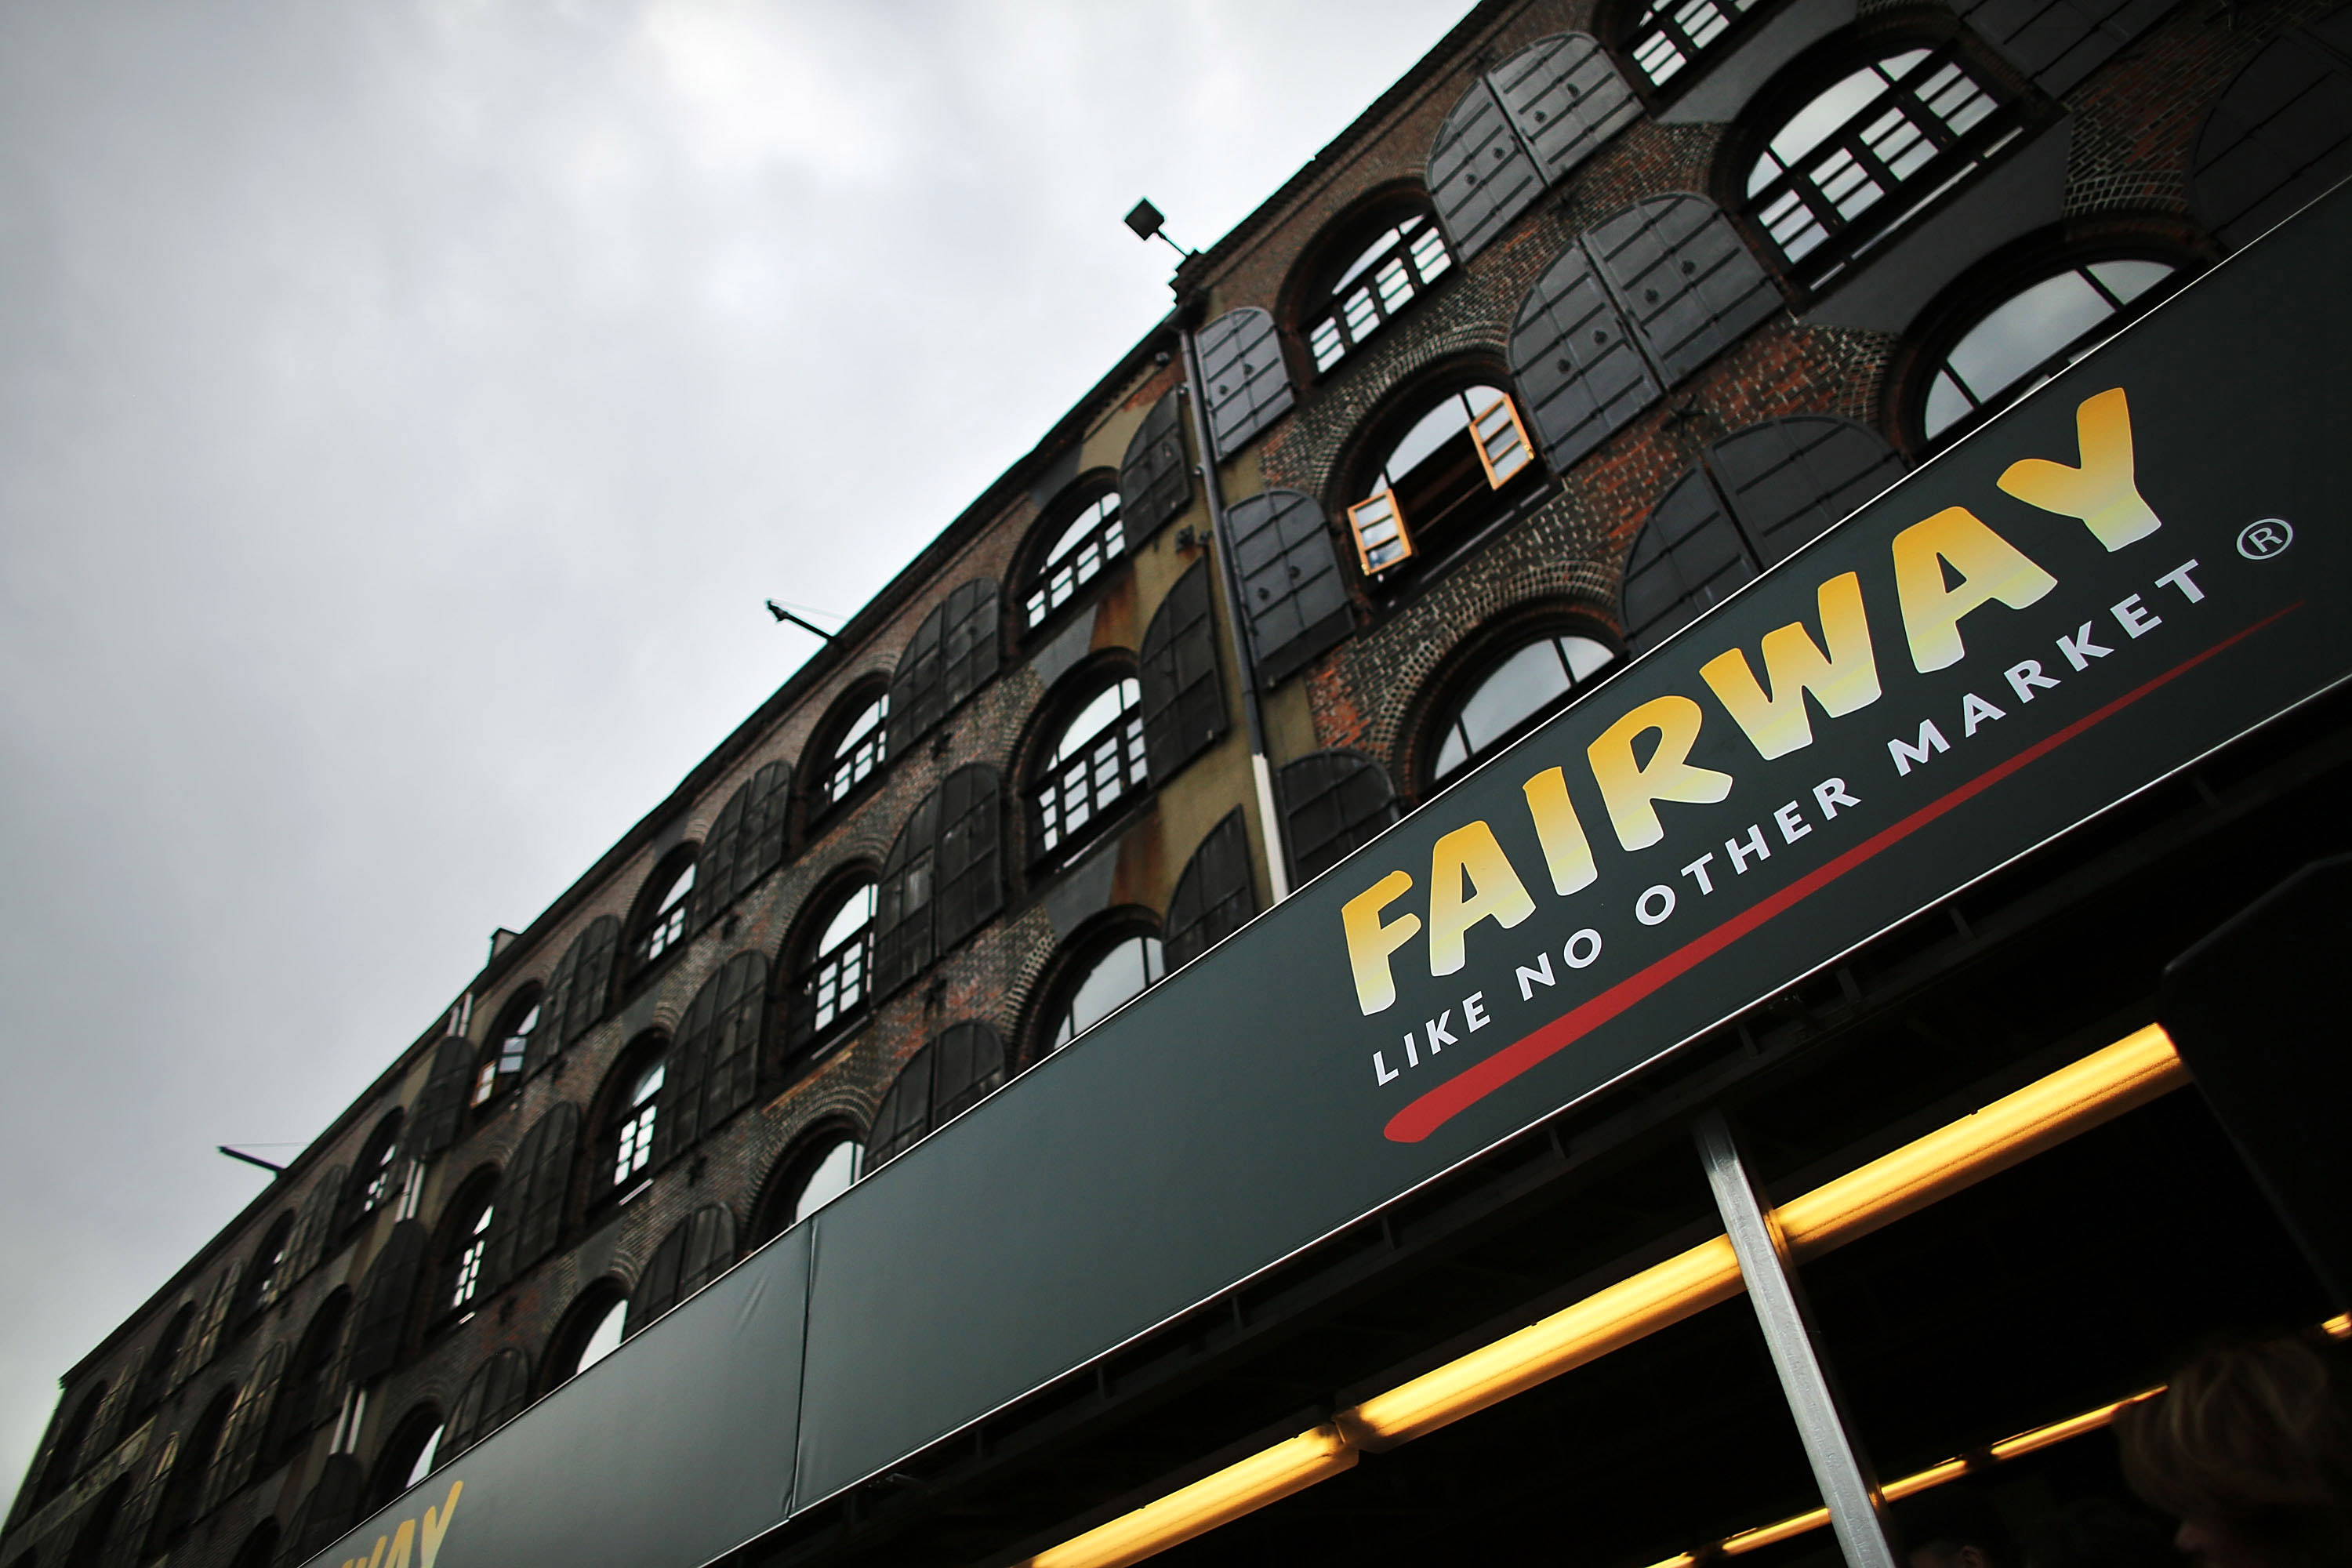 Fairway Market Files for Bankruptcy After All, Selling Some Stores in $70M Deal